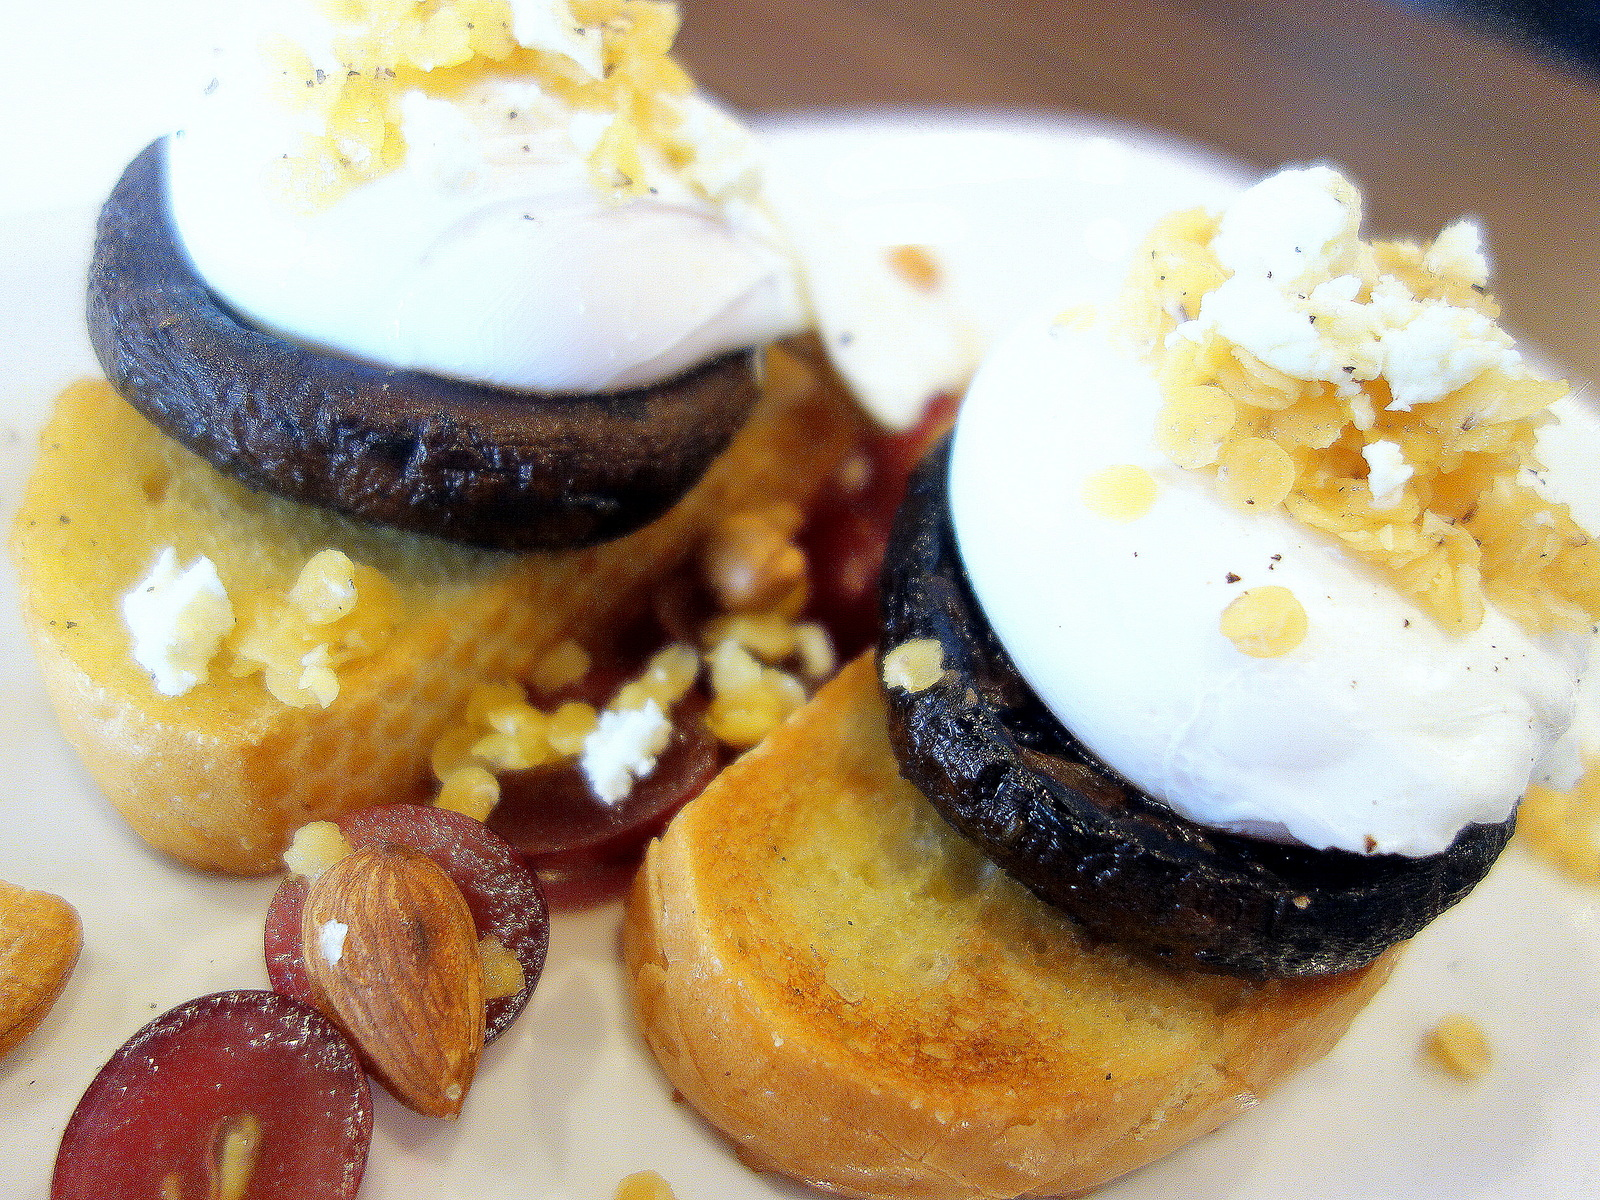 Poached eggs with slow-baked portobello mushrooms, nuts, grapes & lentils, served on toast. Photo from Eatdrinkkl.